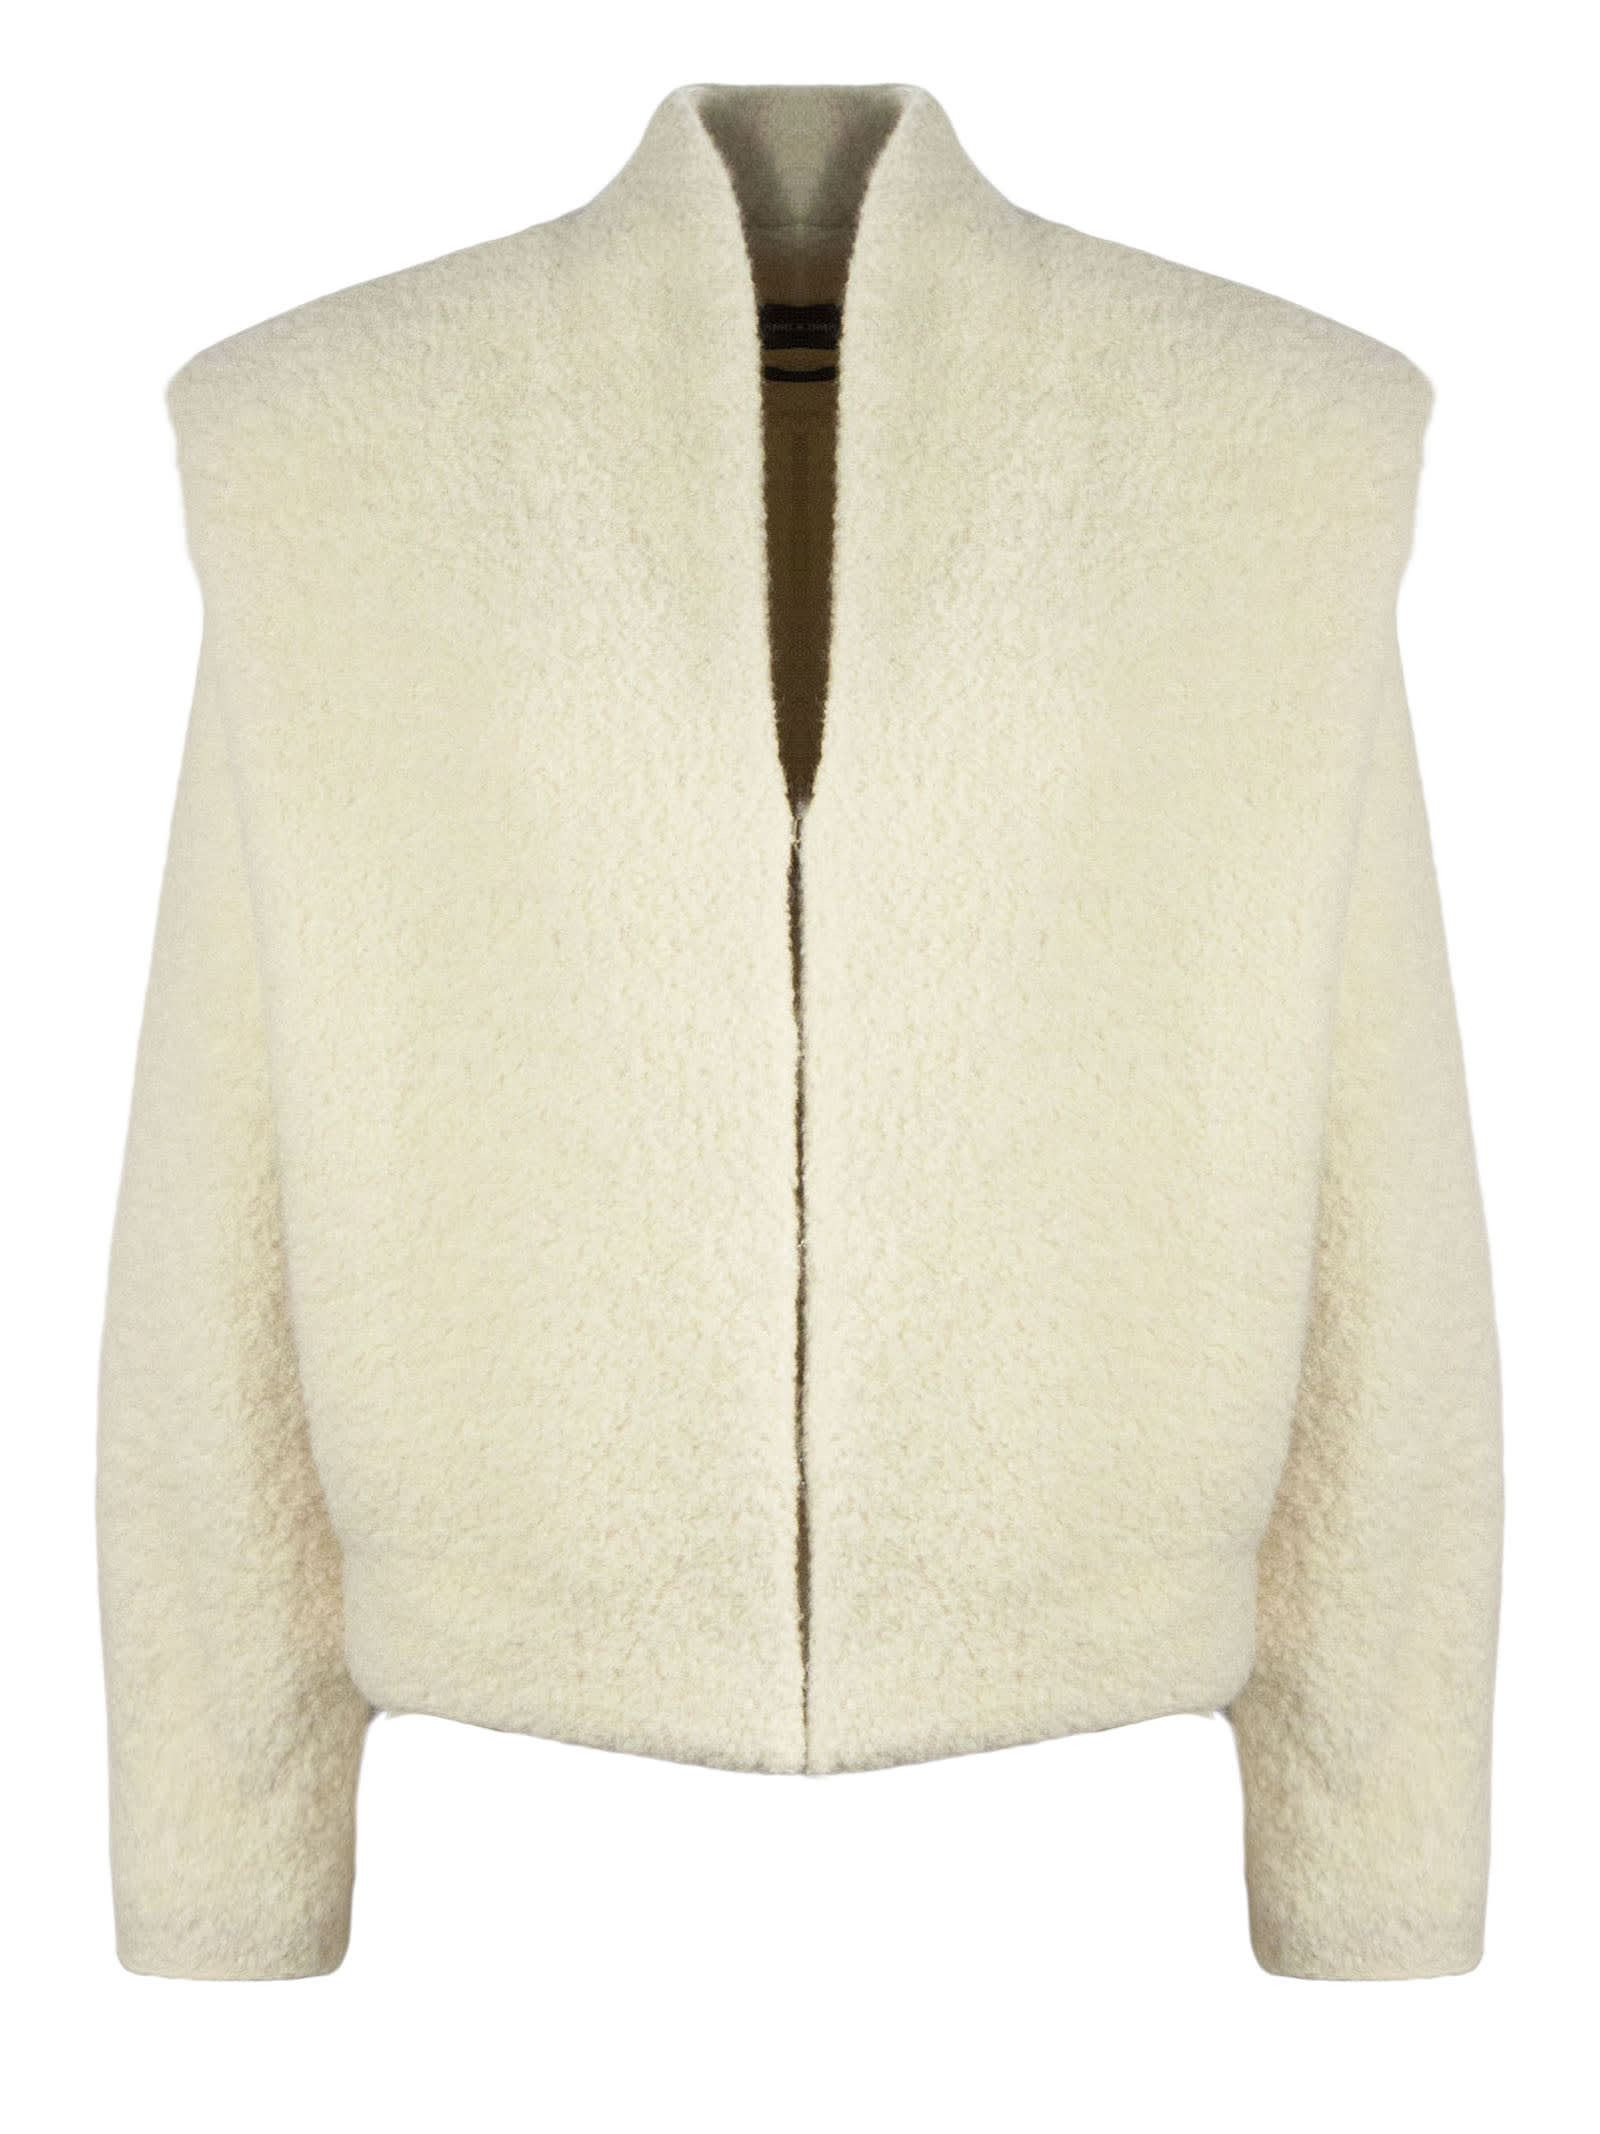 Isabel Marant White Alpaca-virgin Wool Blend Jacket In Panna